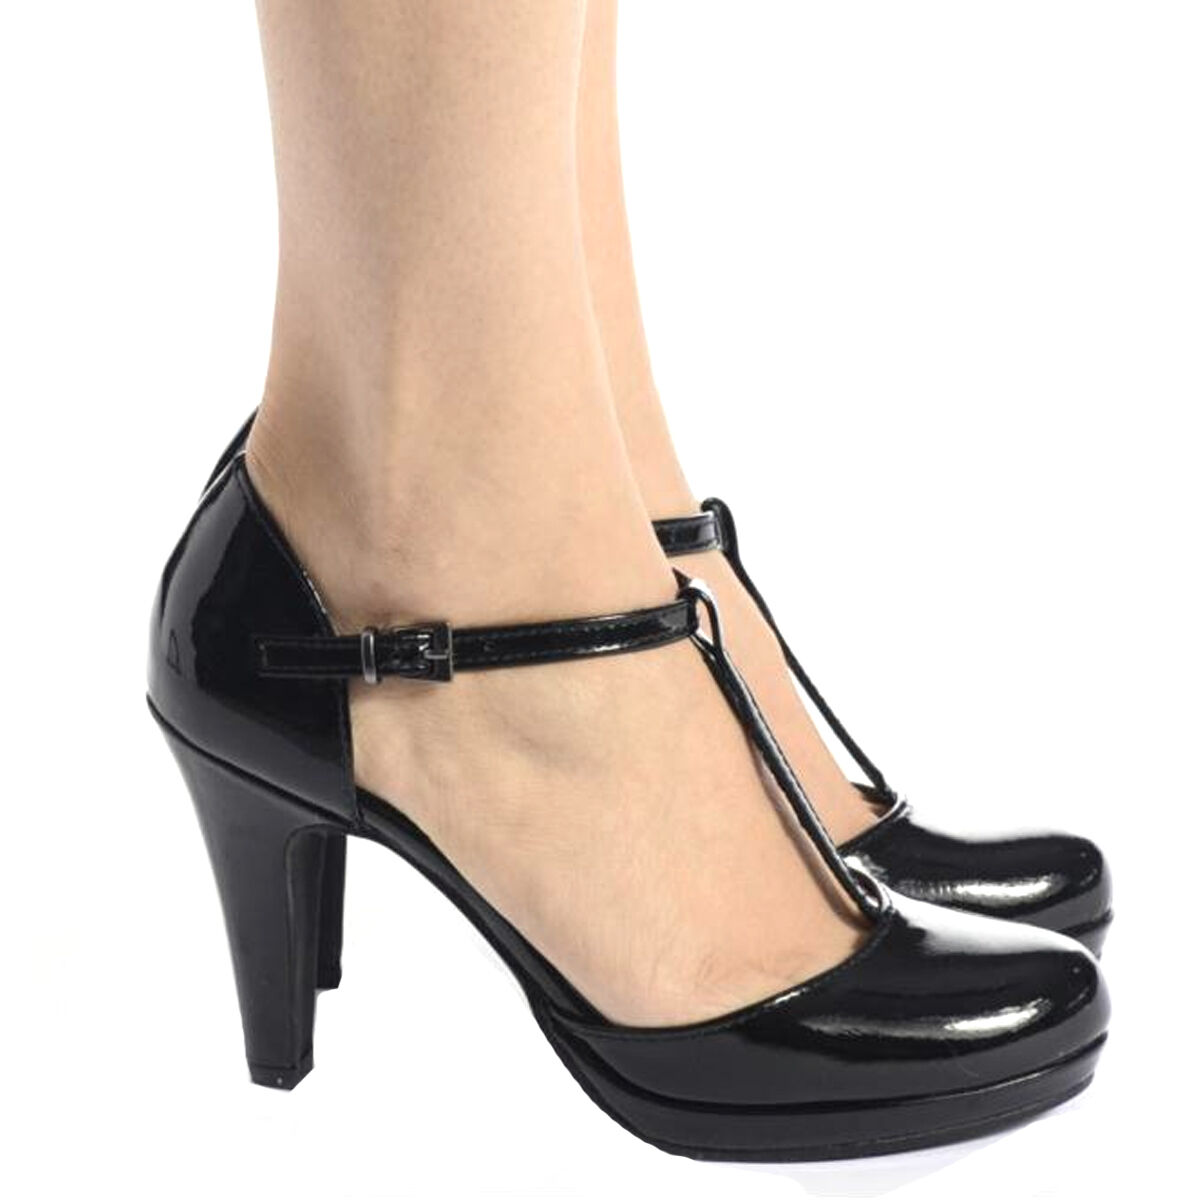 Ladies Womens High Heel T Bar Round Front Toe Ankle Strap Buckle Patent Size